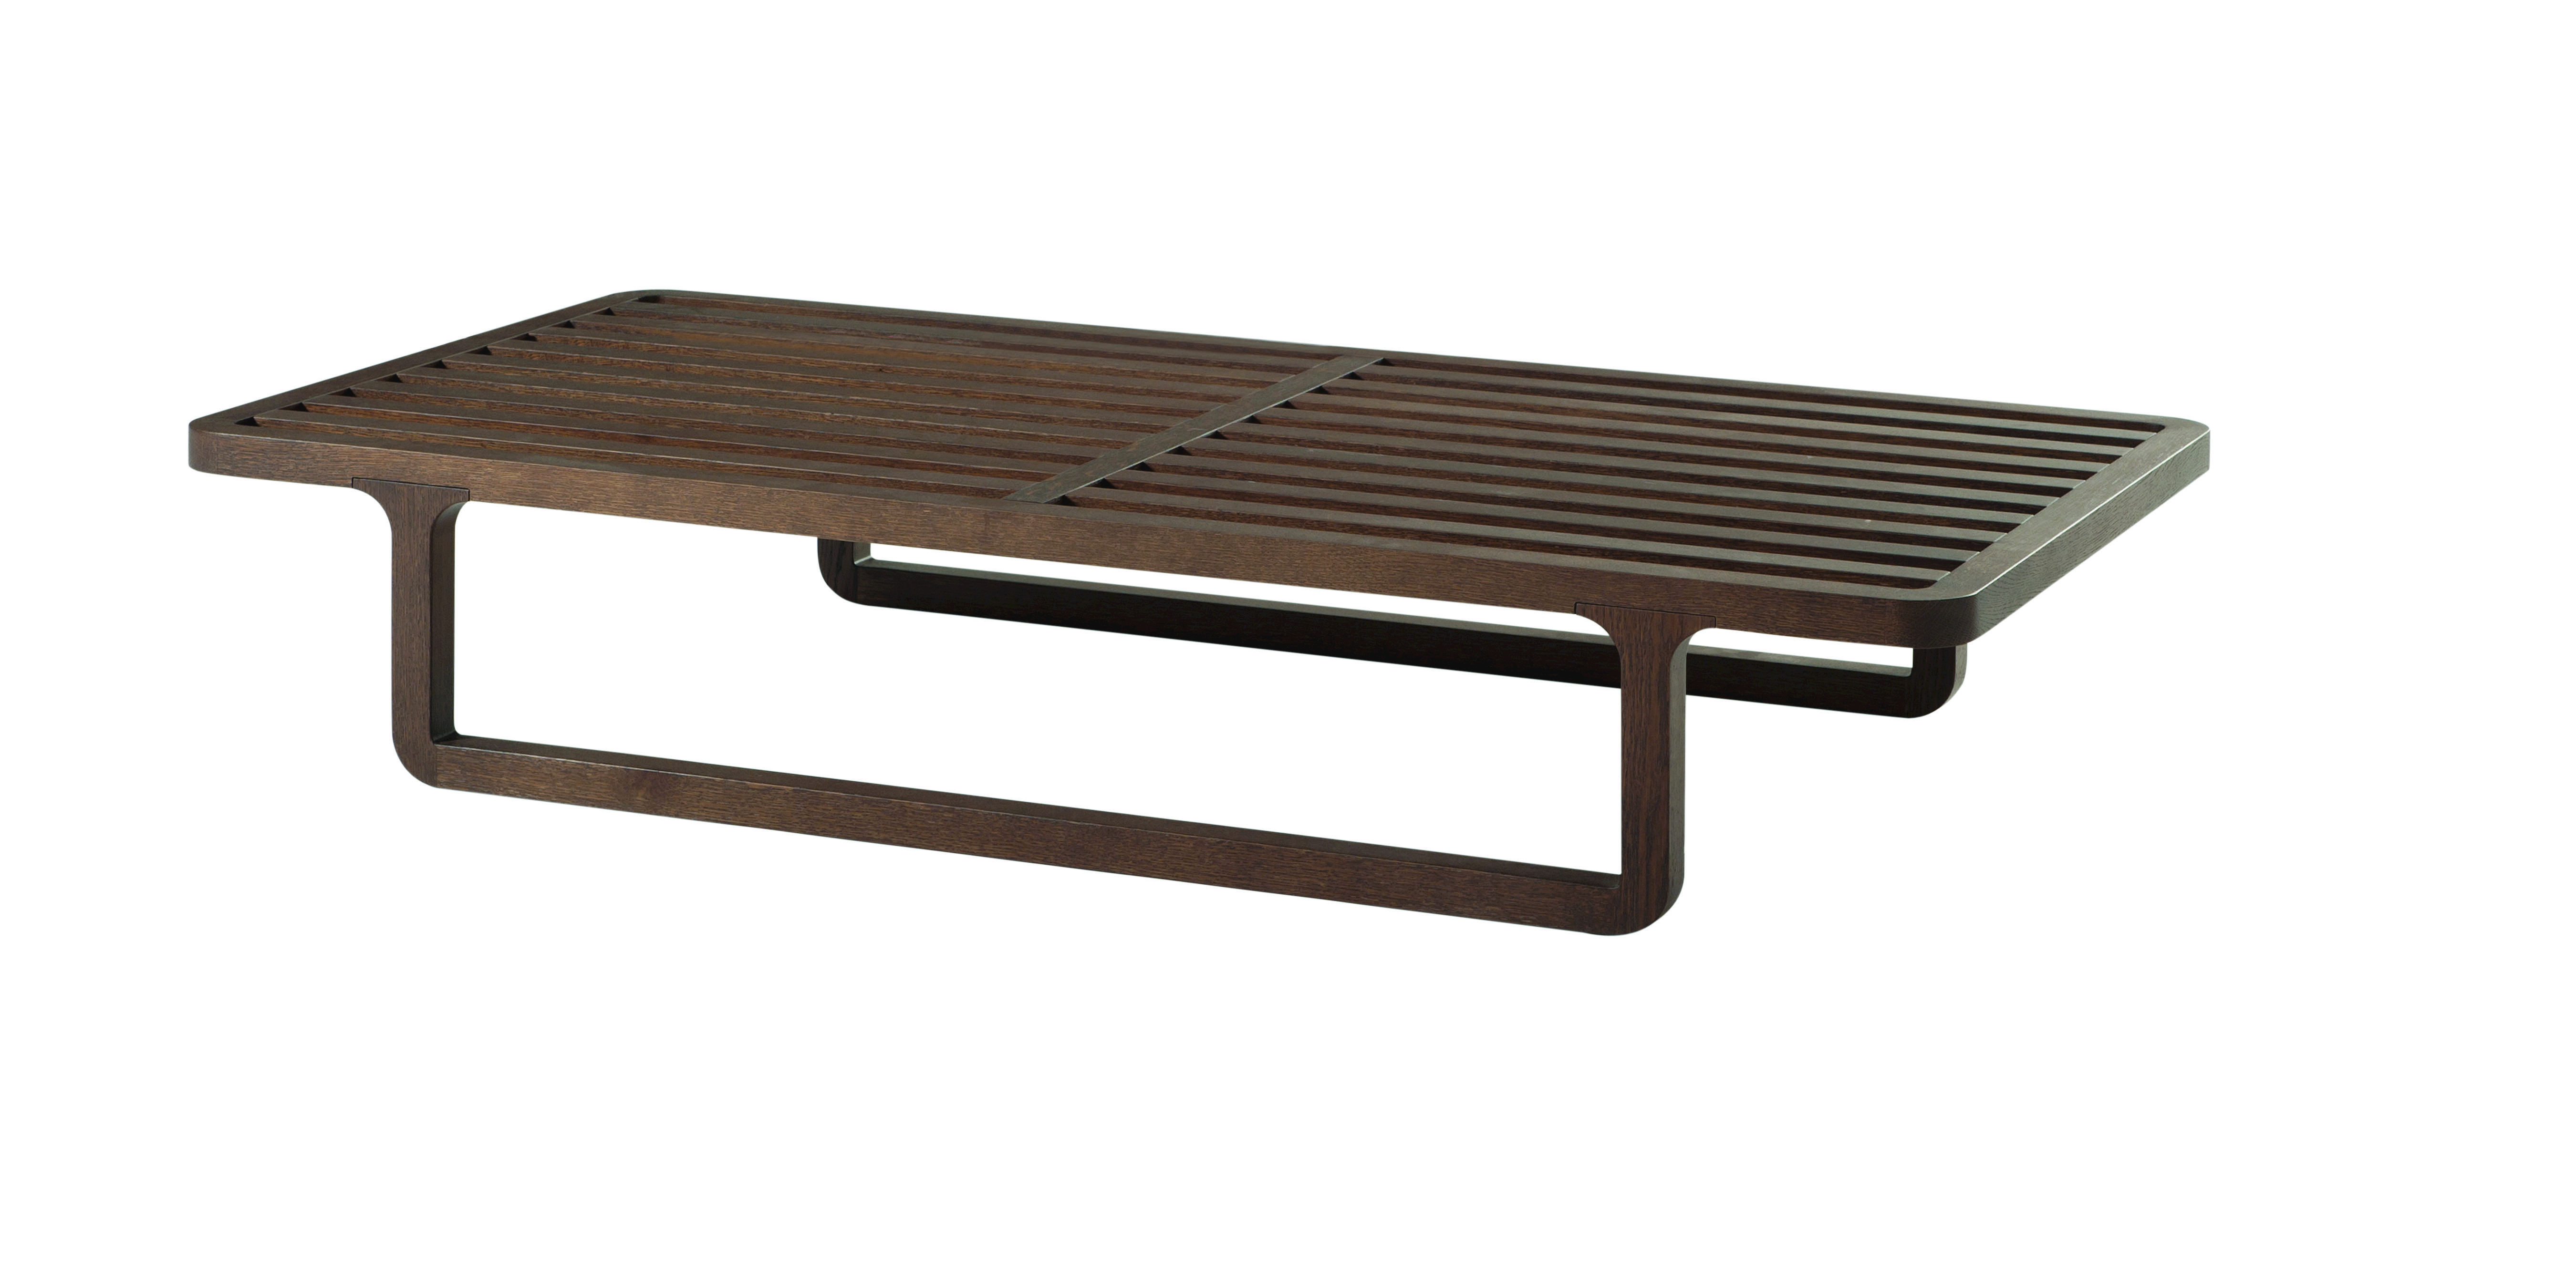 Lacquered coffee table for living room OCTET Les Contemporains